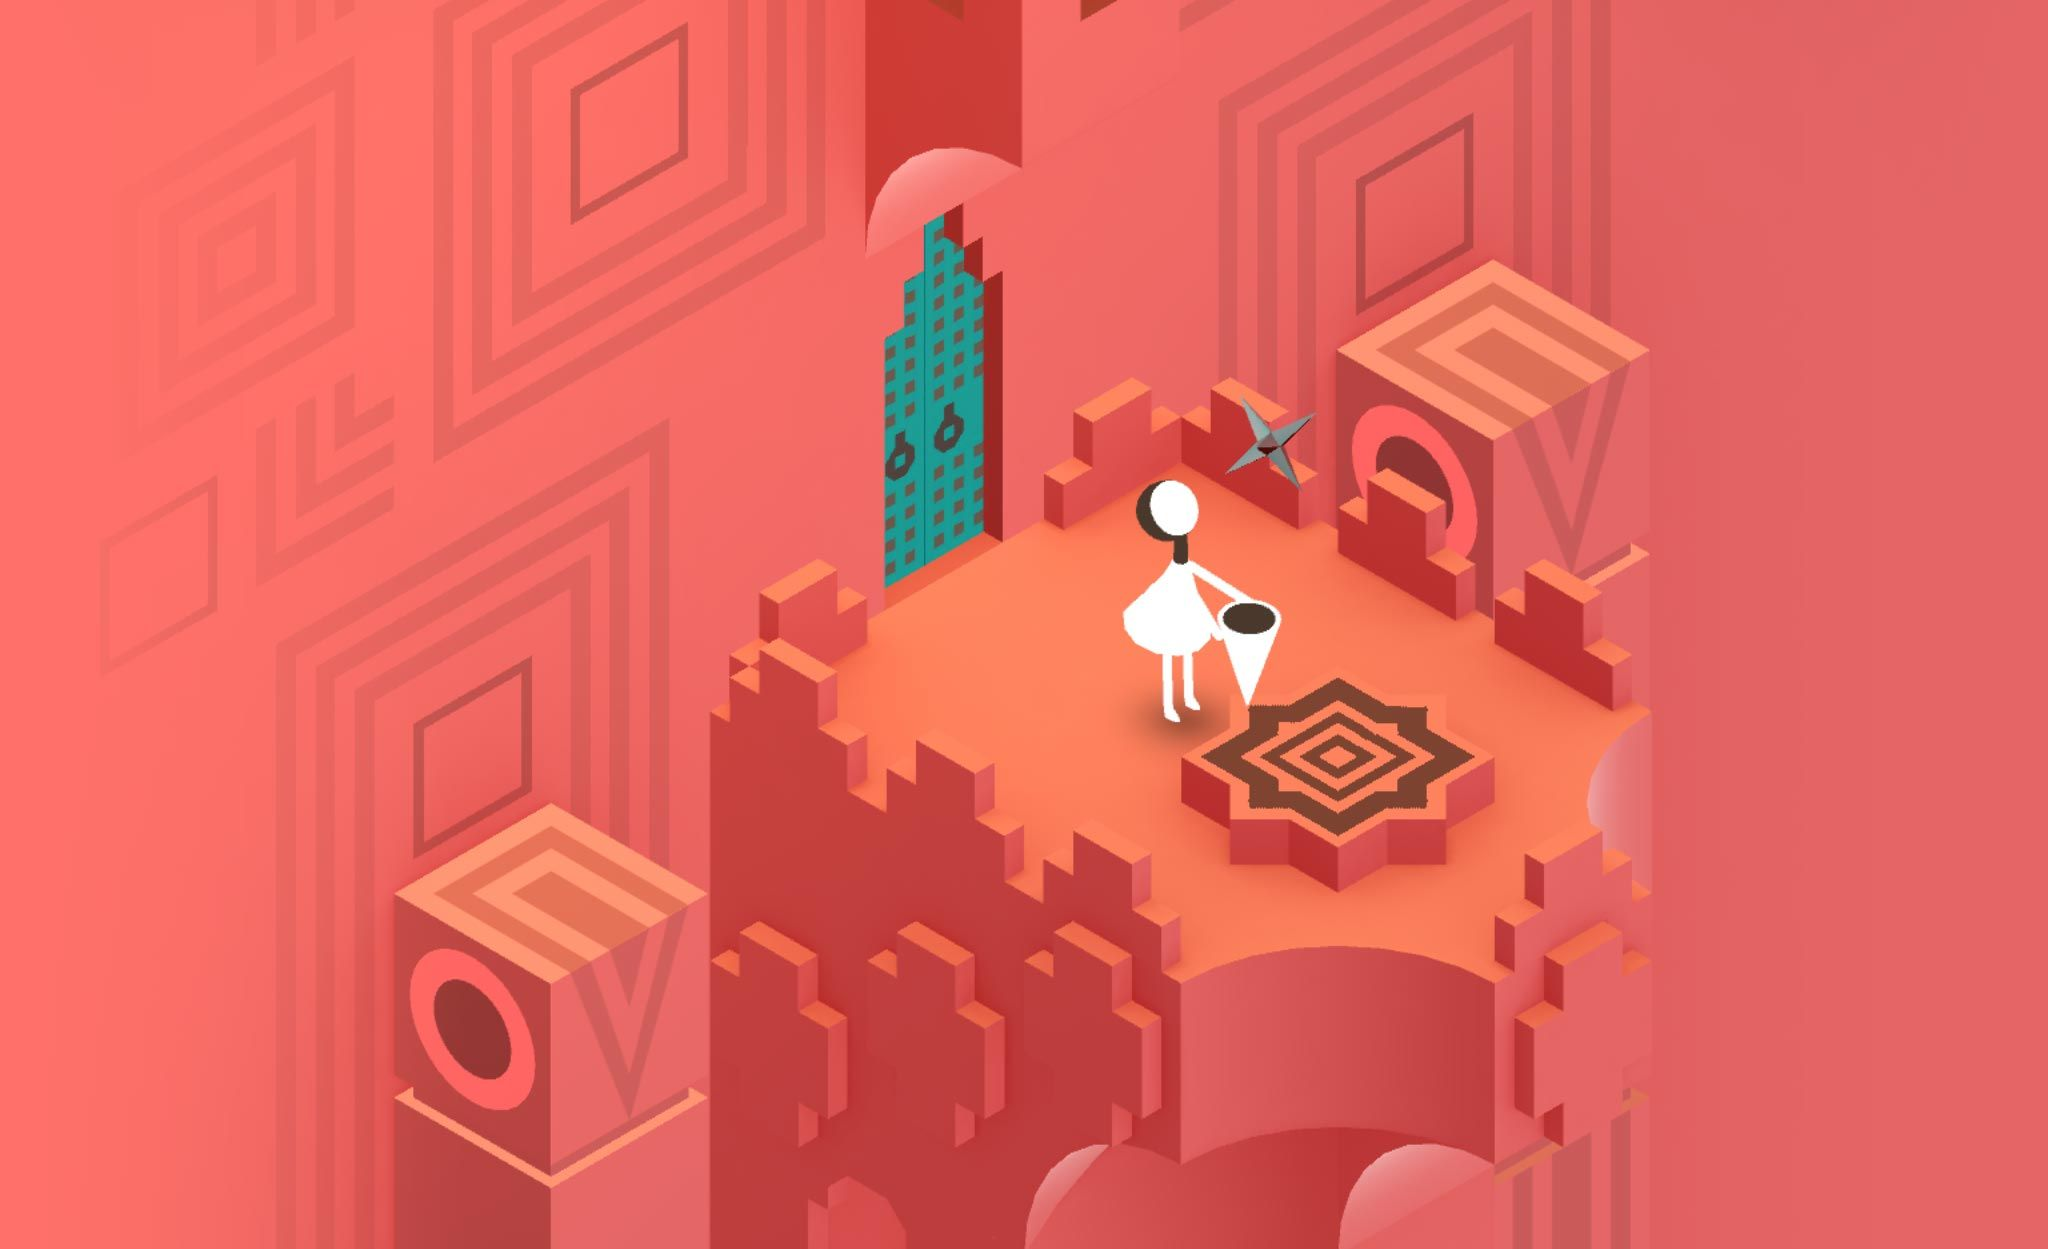 Monument Valley 2 An Ios Game From Ustwo Games Monument Valley